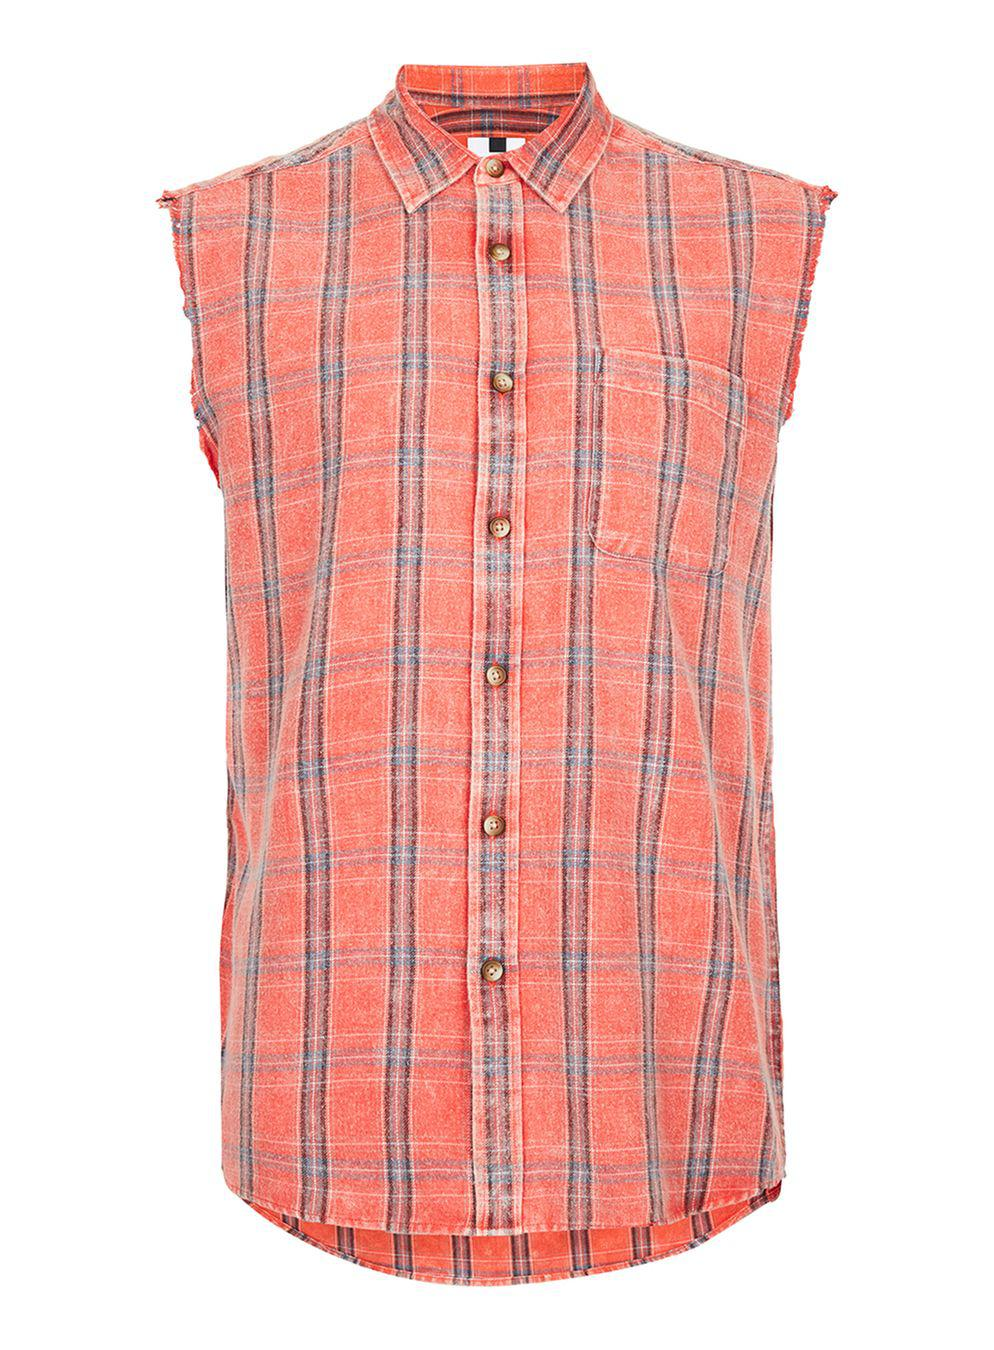 Lyst Topman Sleeveless Orange And Red Check Shirt In